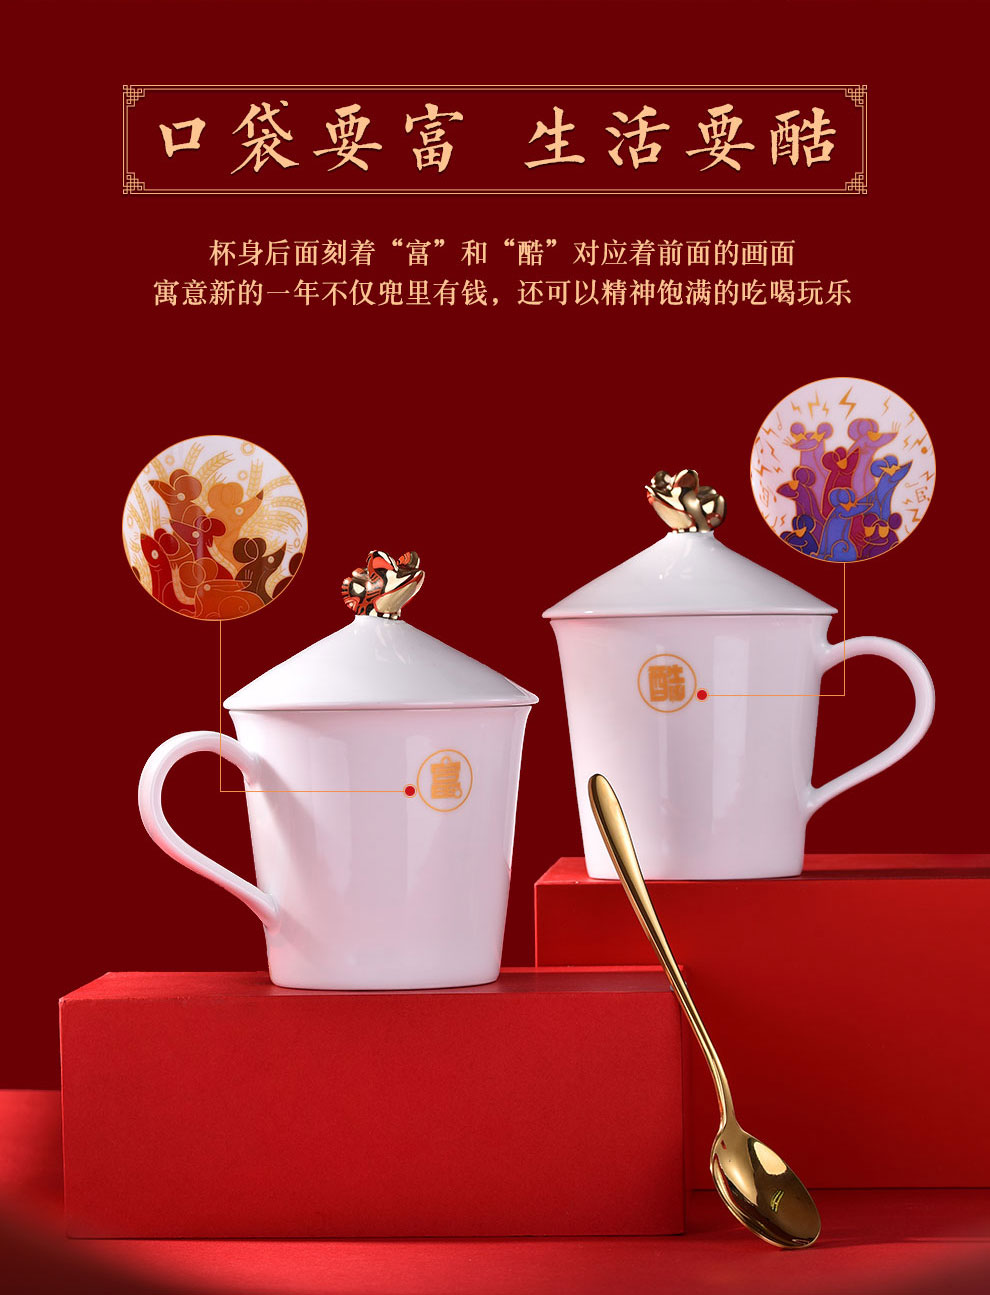 Jingdezhen flagship store express picking keller cup for cup set high temperature ceramic porcelain gift gift box